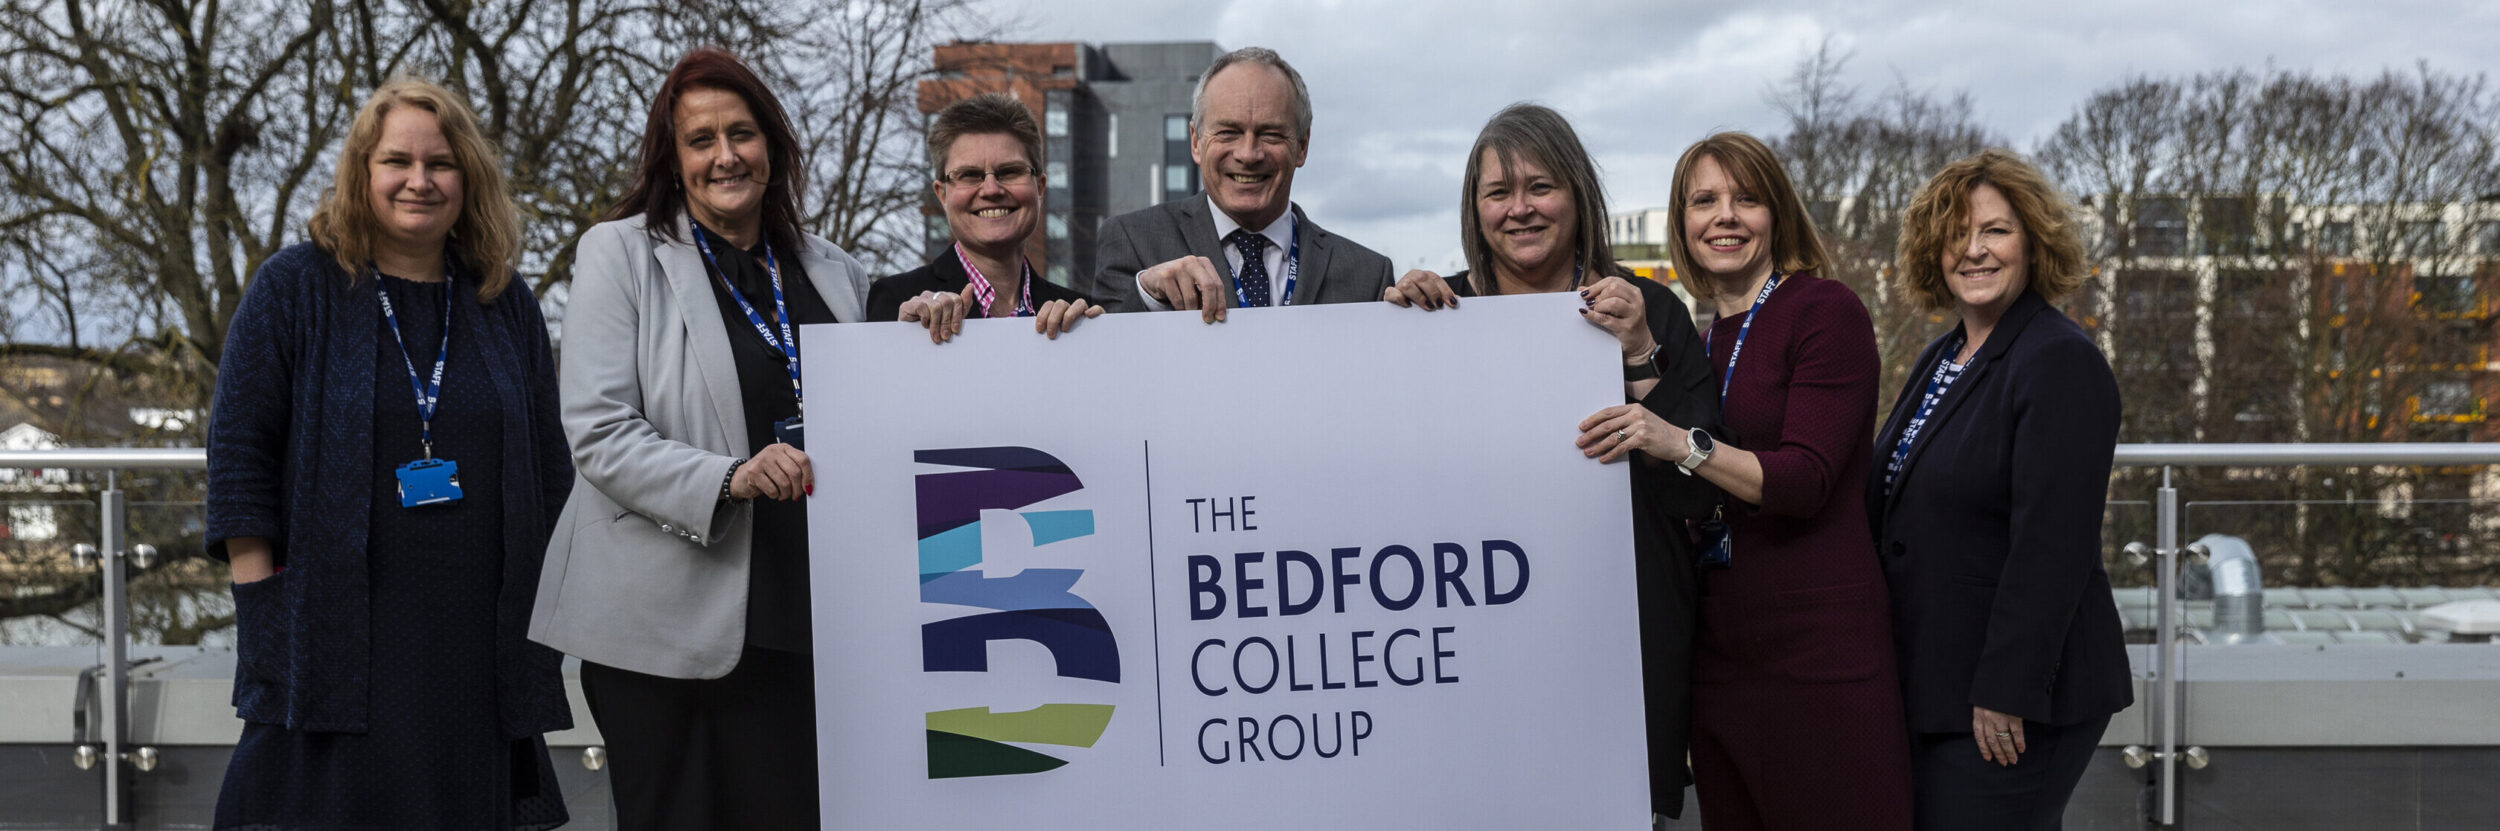 Ian Pryce The Bedford College Group